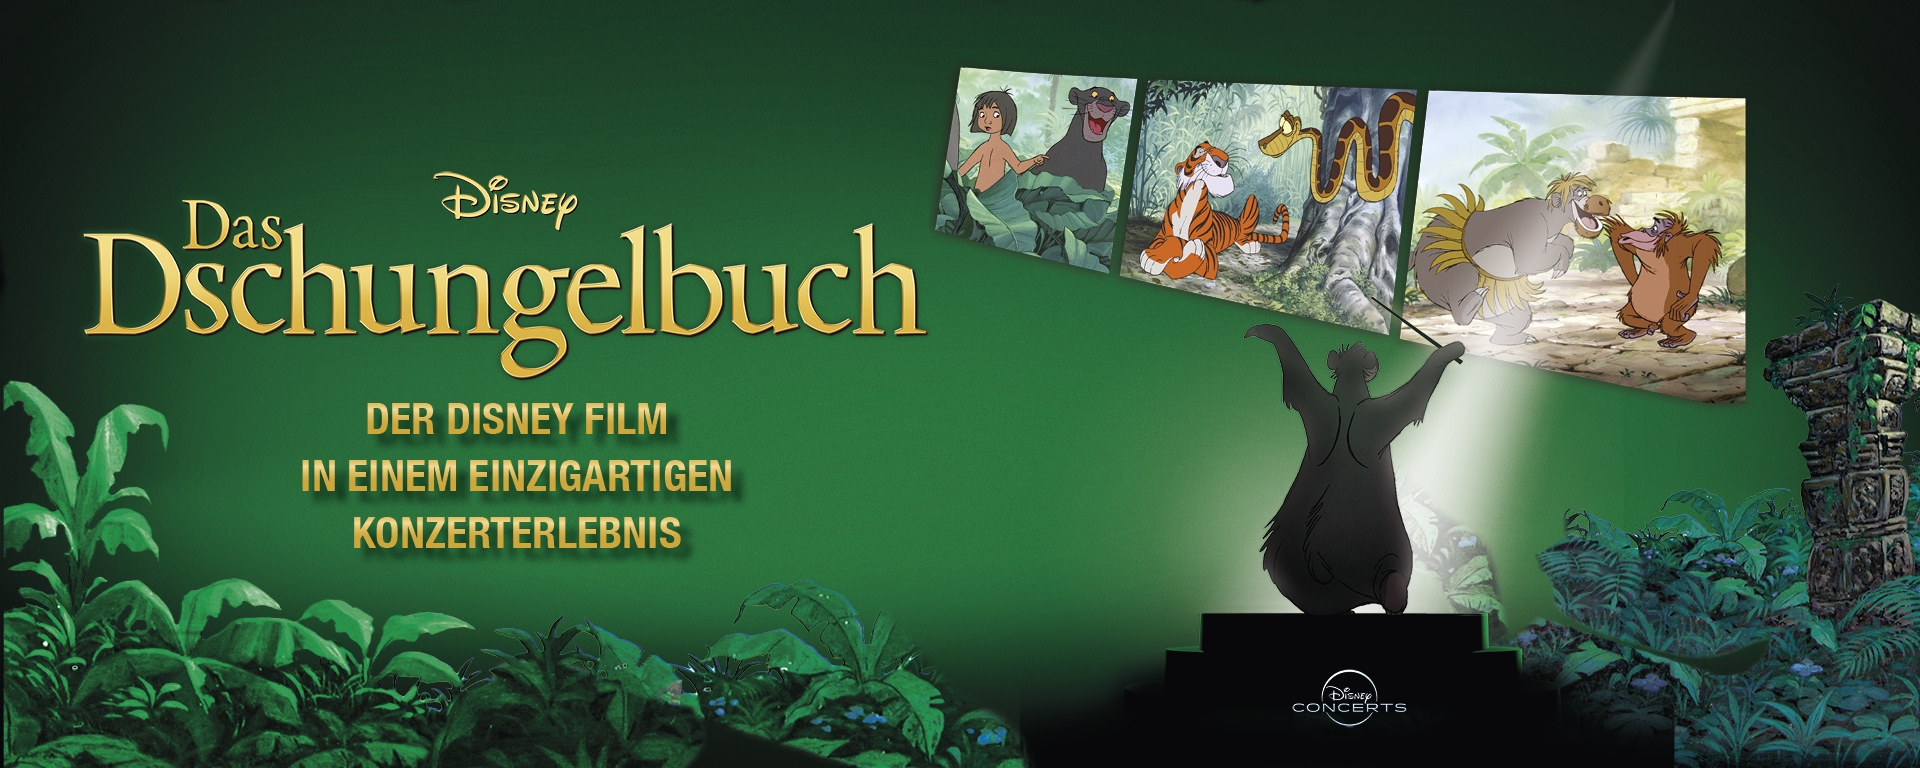 Das Dschungelbuch (The Jungle Book) — Disney in Concert